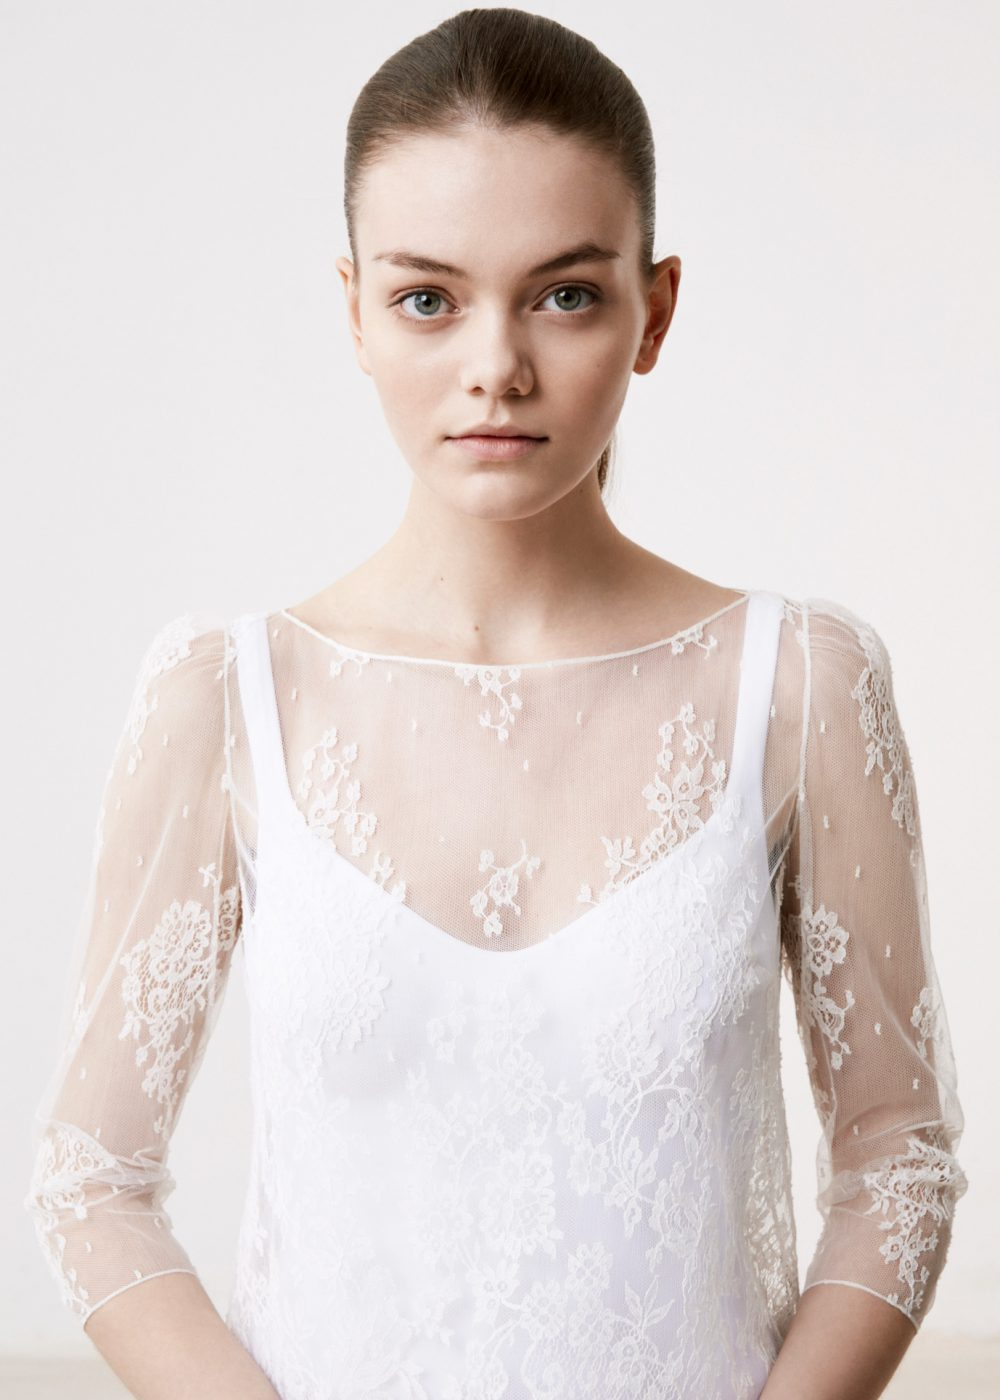 Alessandro-lily-top-mariee-dentelle-1